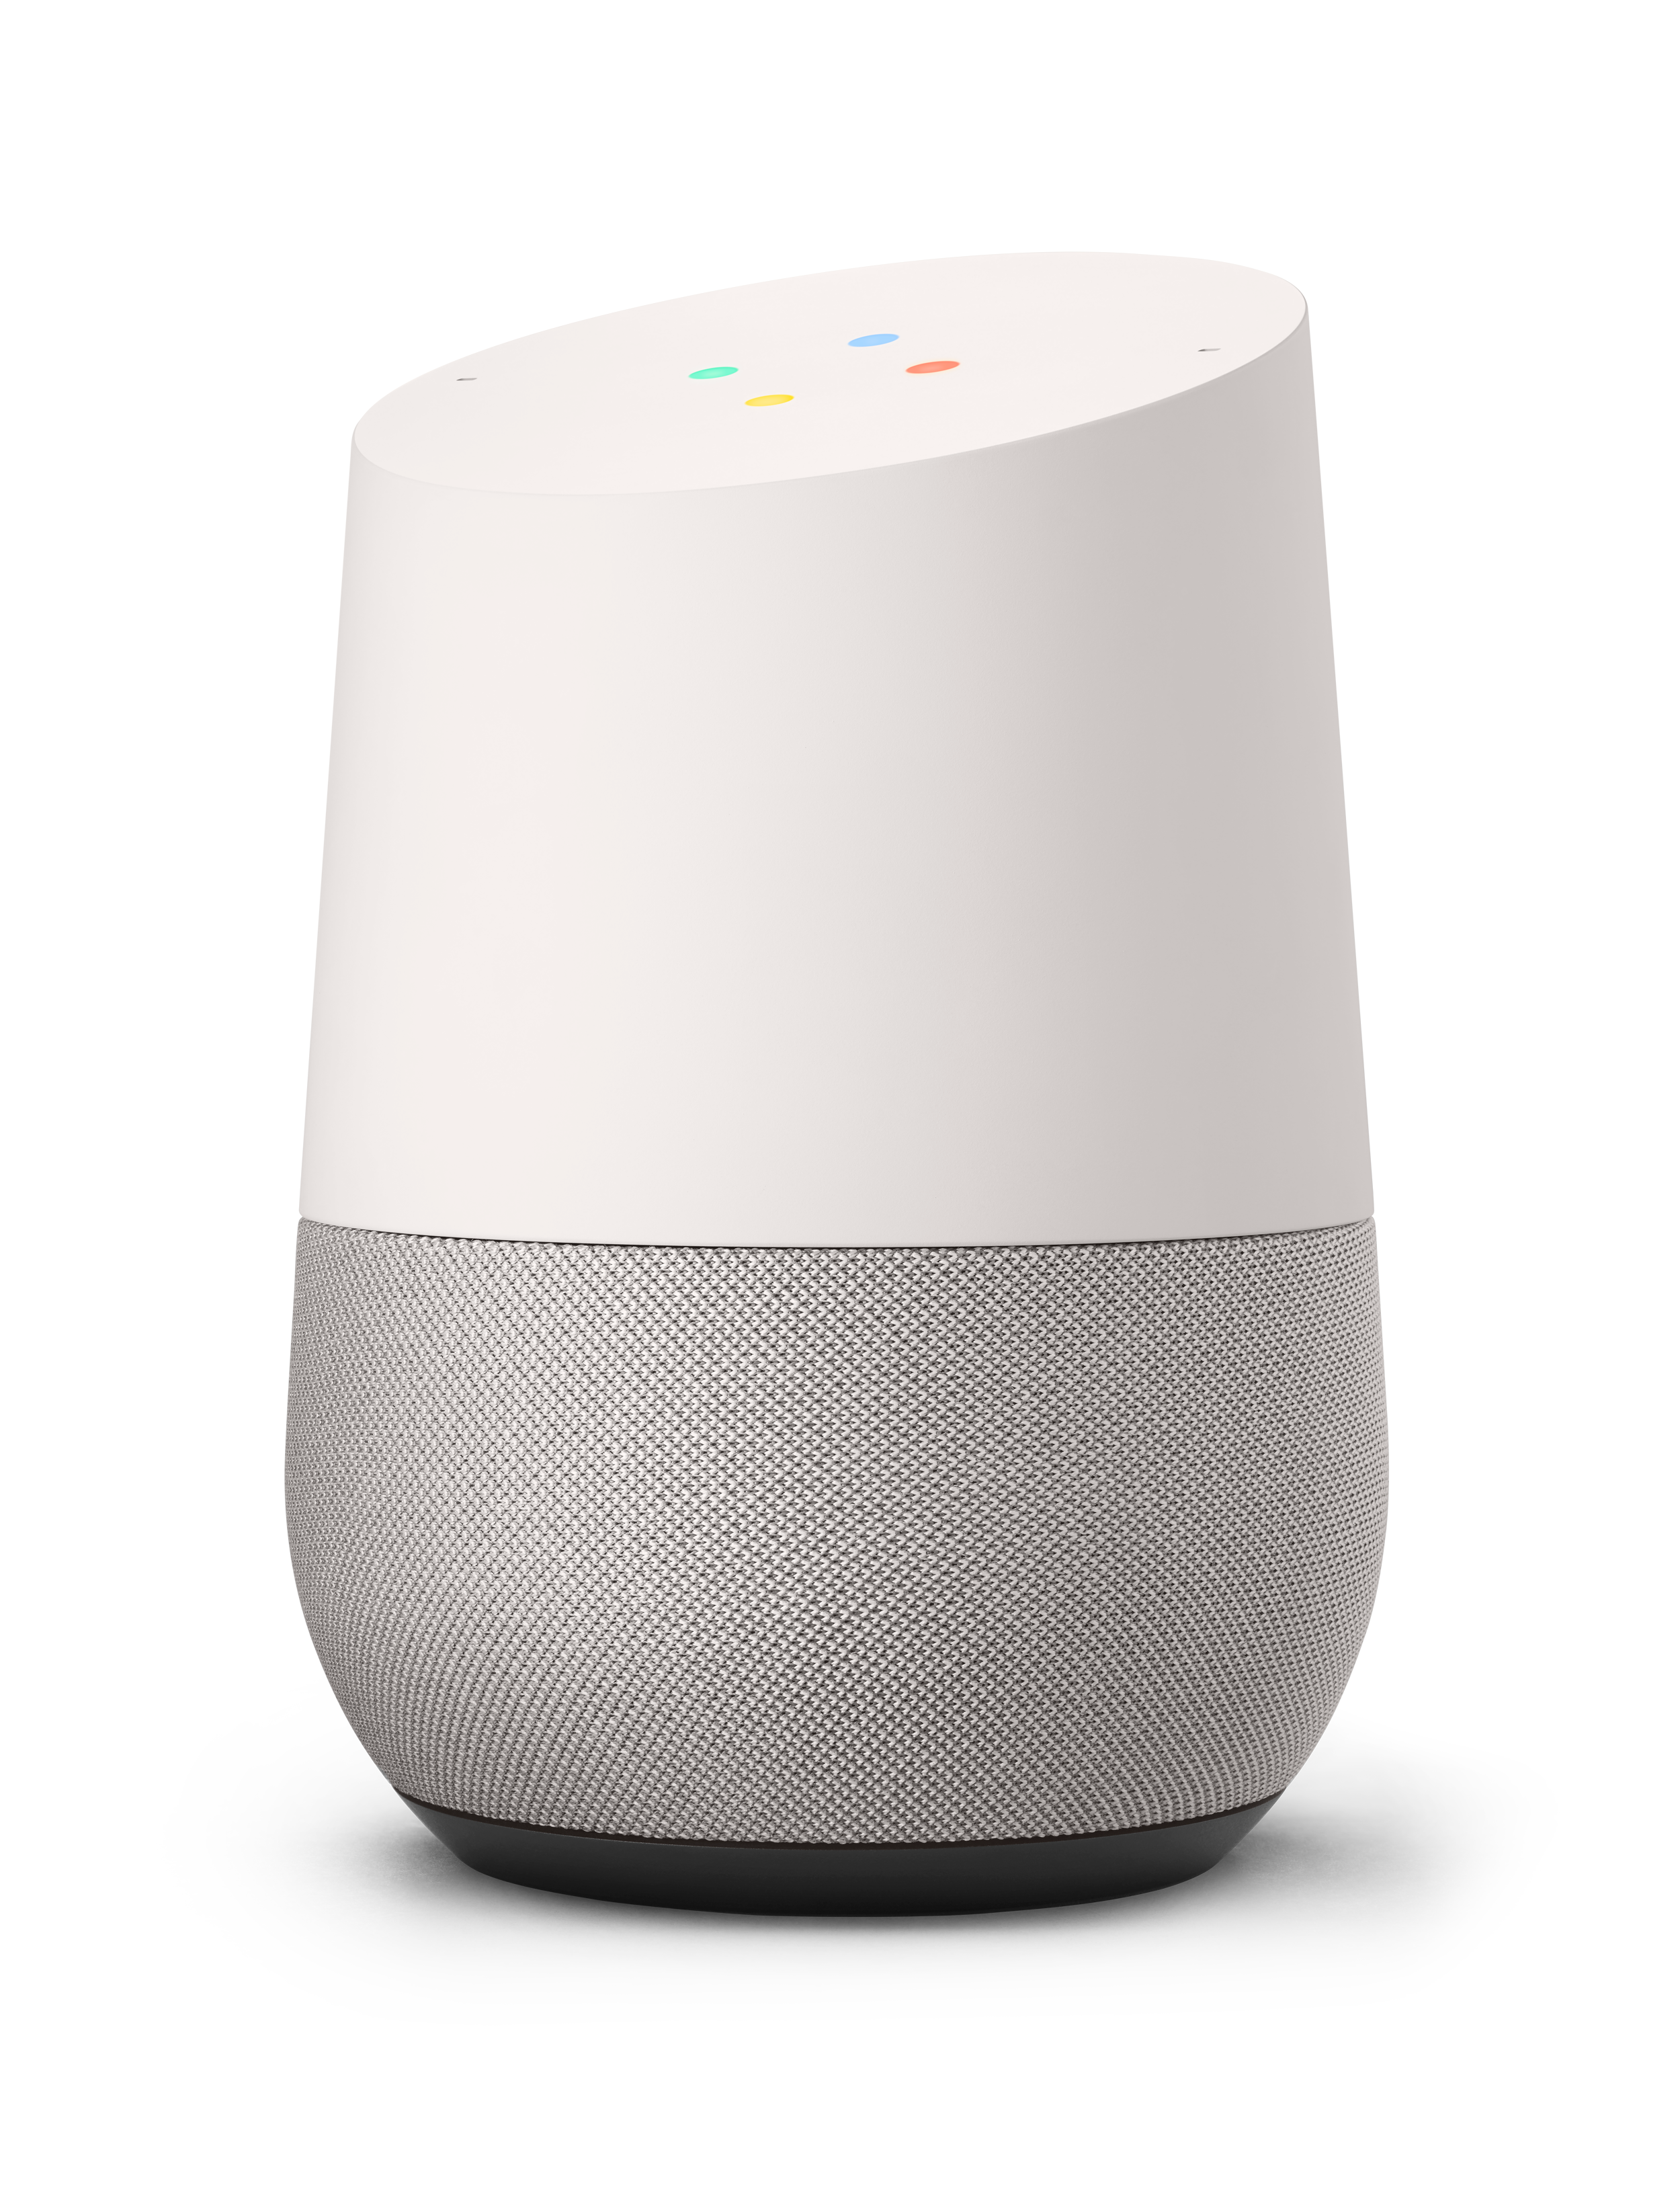 Everything you need to know about Google Home (GOOG), the smart